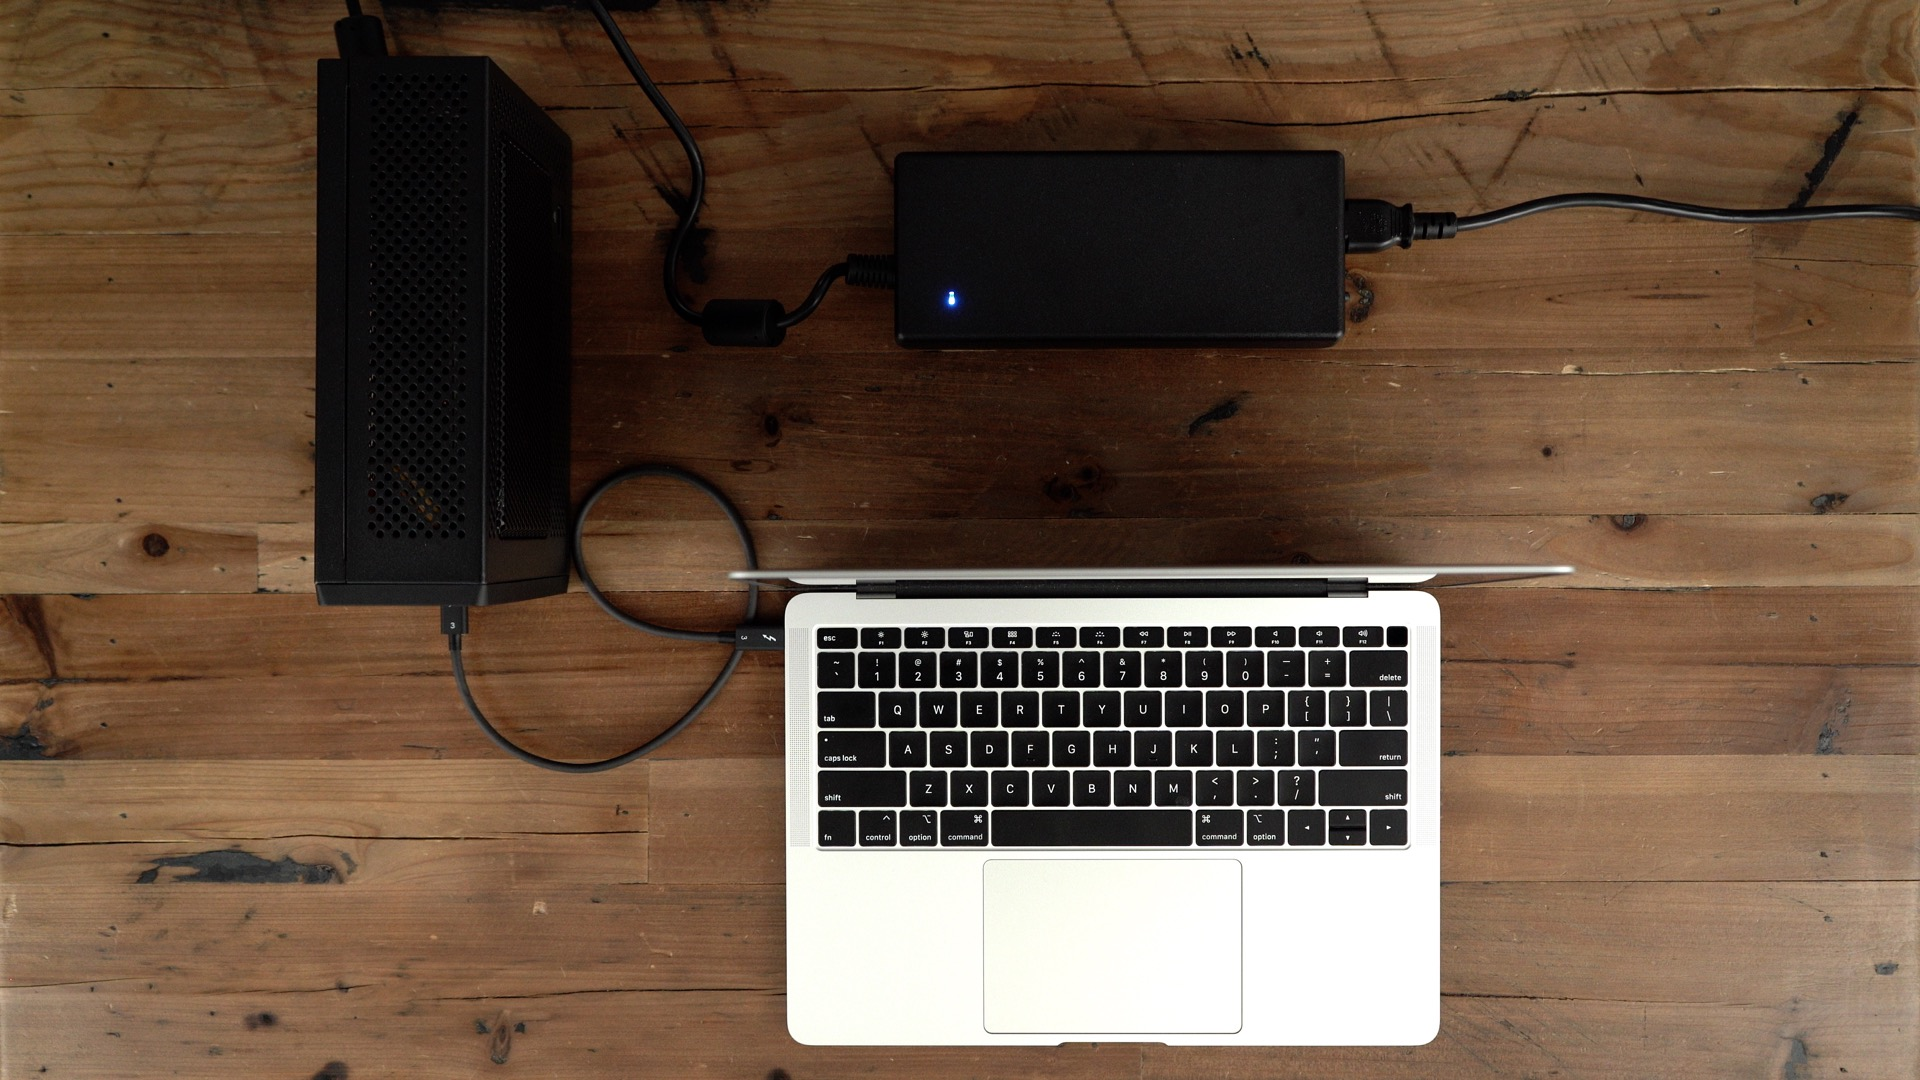 PowerColor Mini Pro eGPU RX 570 MacBook Air Setup